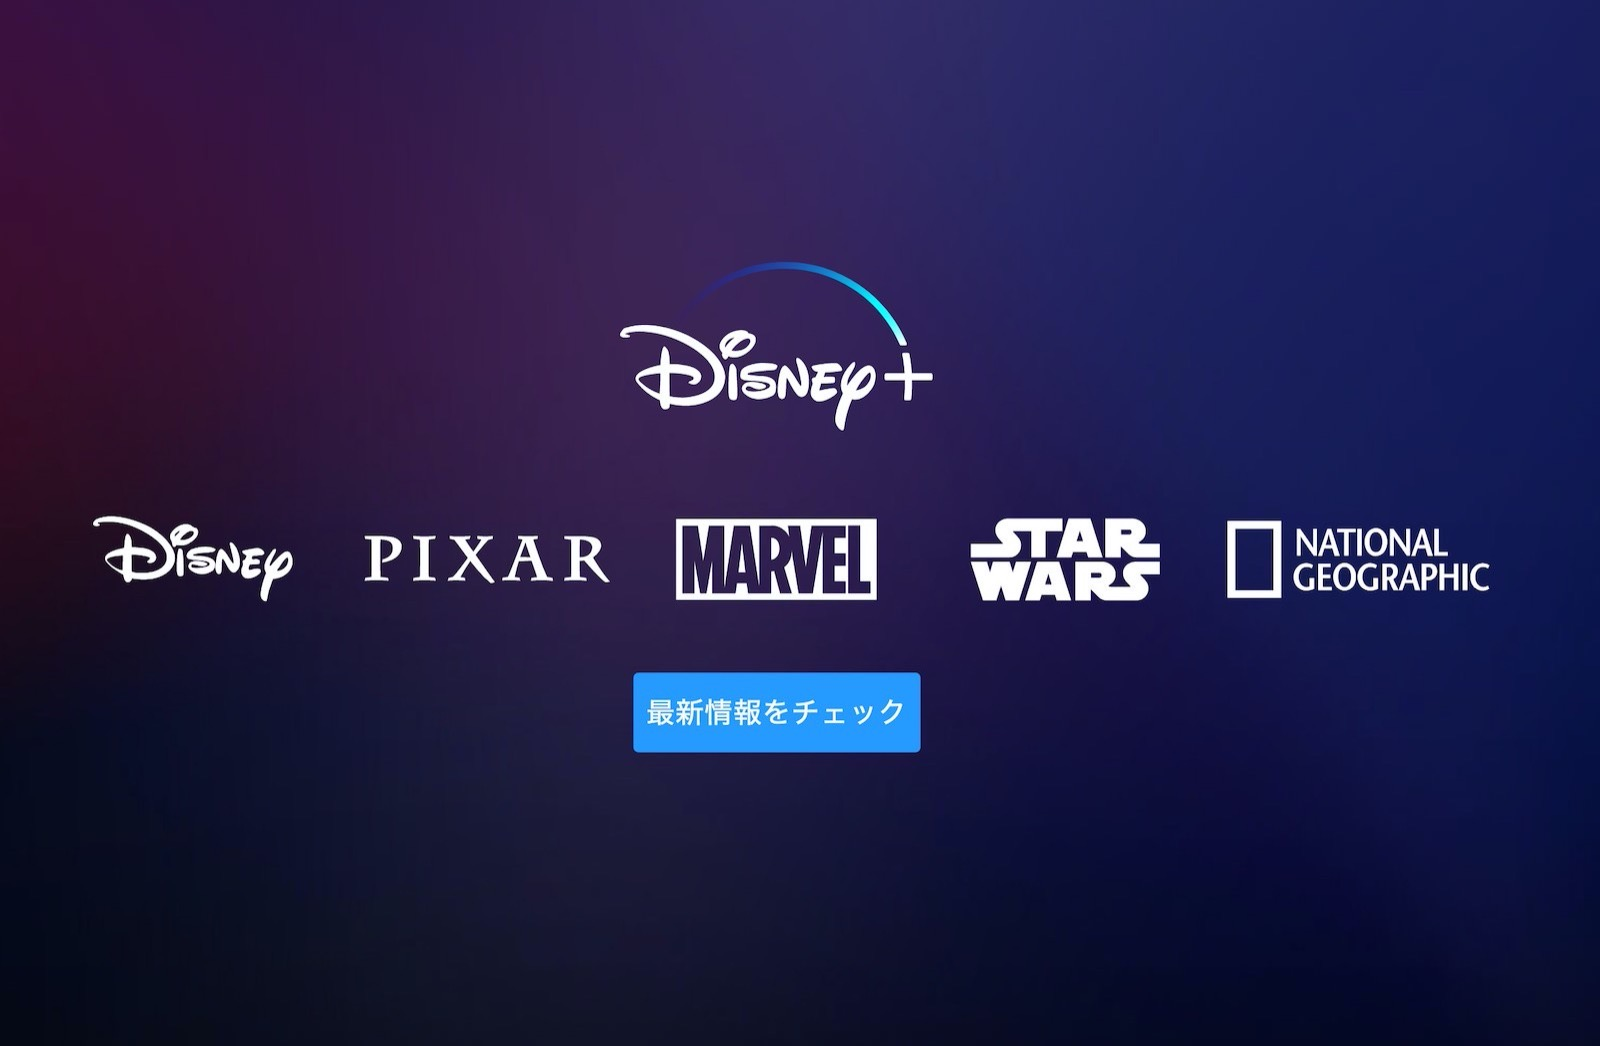 disney-plus-coming-to-japan.jpg